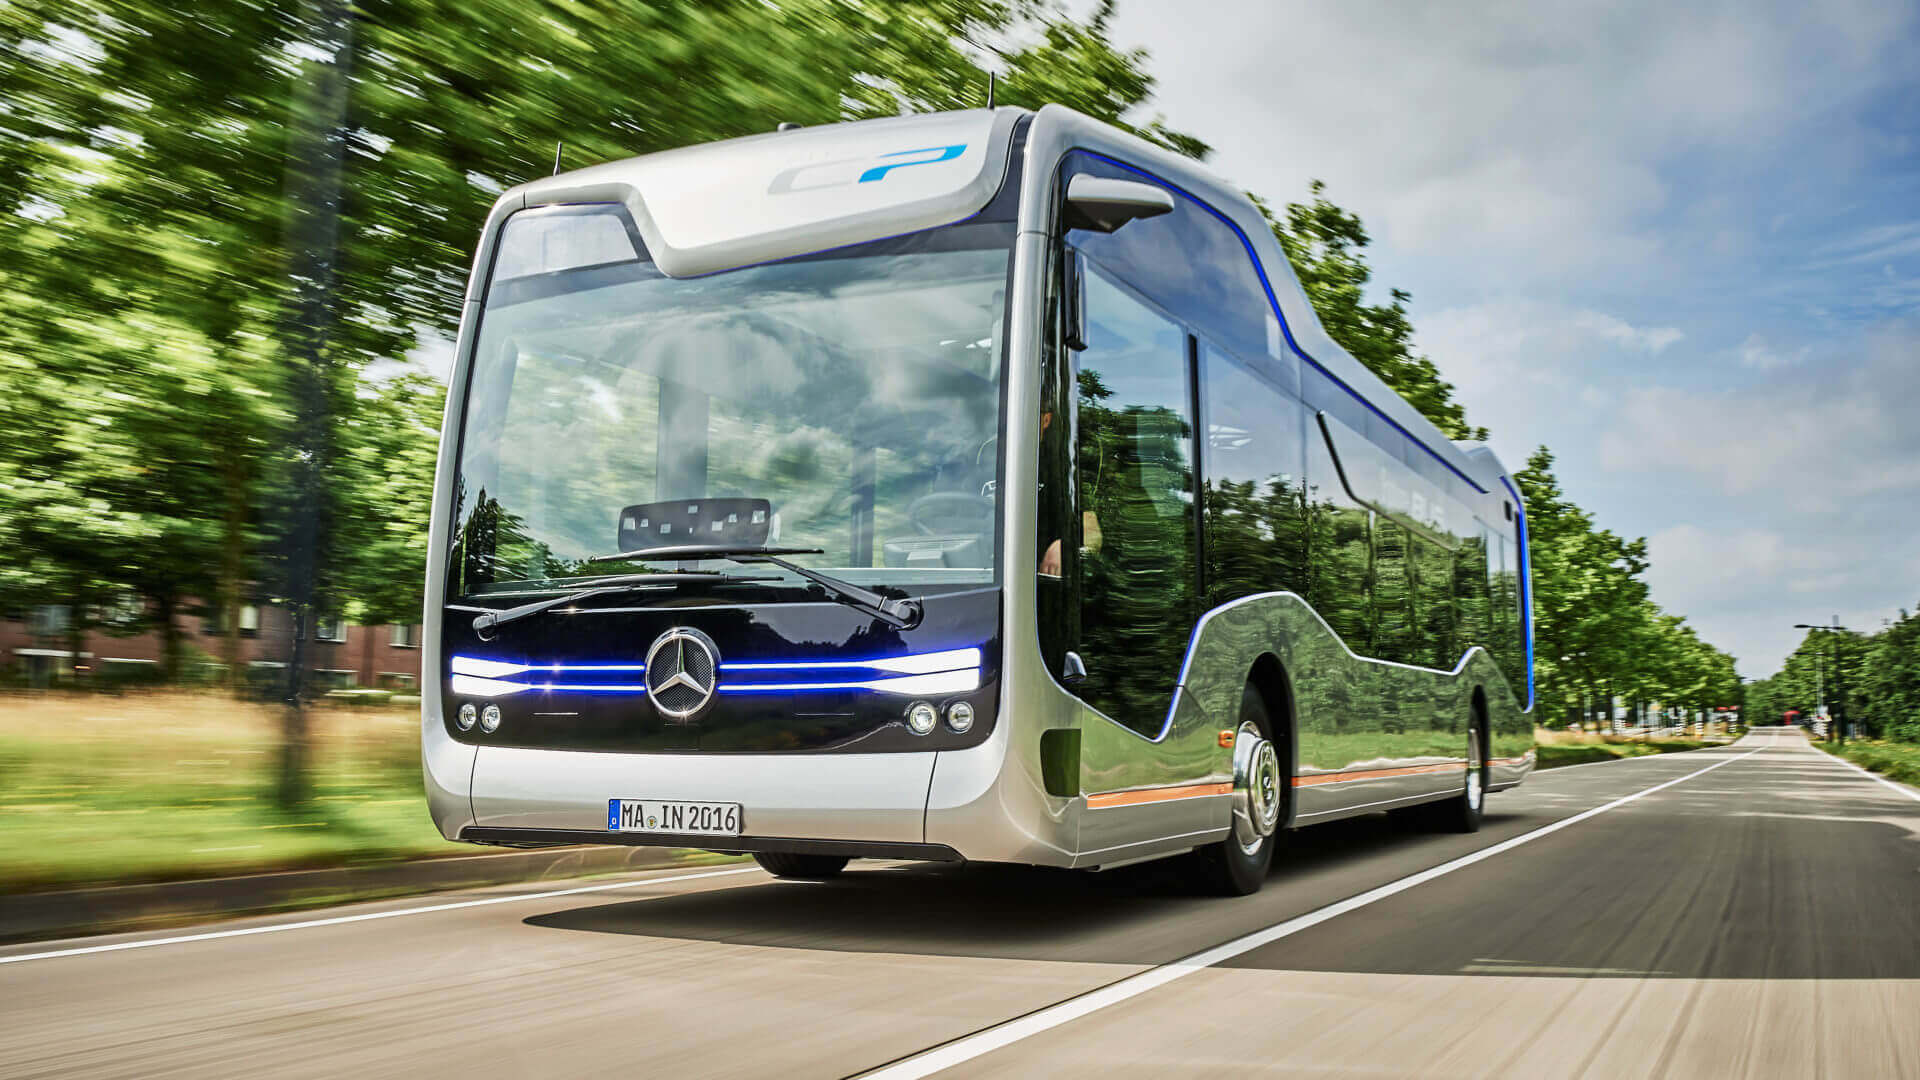 Daimler Now 3D Printing Replacements and Parts for Buses | All3DP